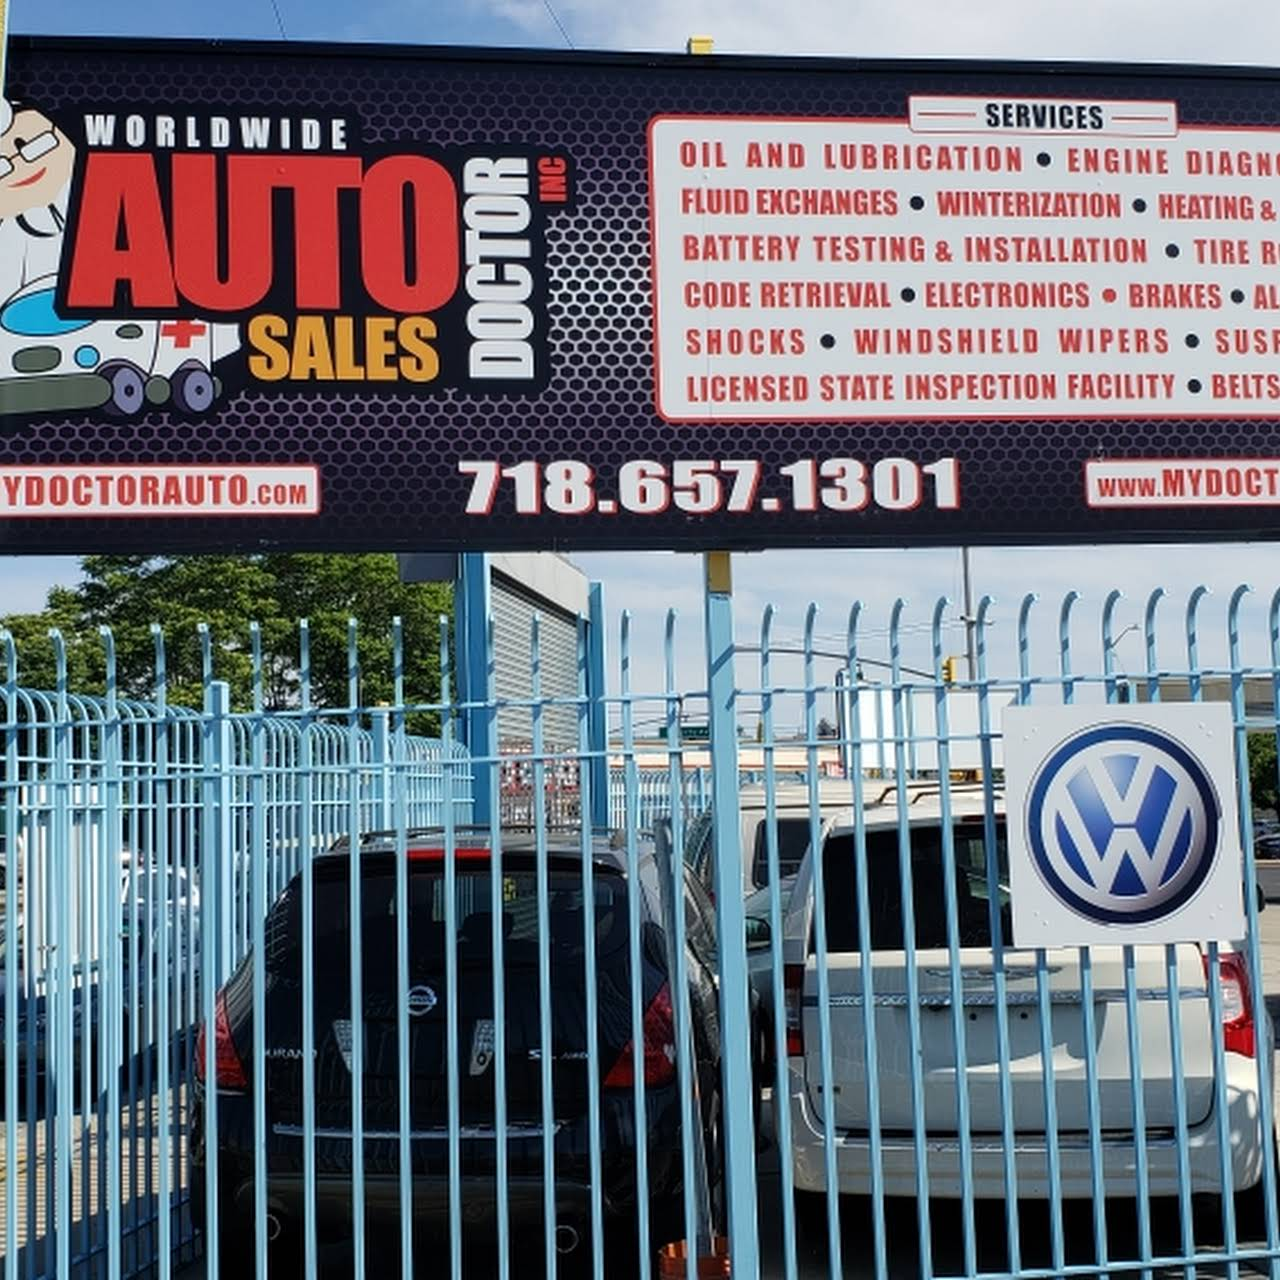 World Wide Auto Sales & Repair Doctor INC - Auto Repair, Sales ...